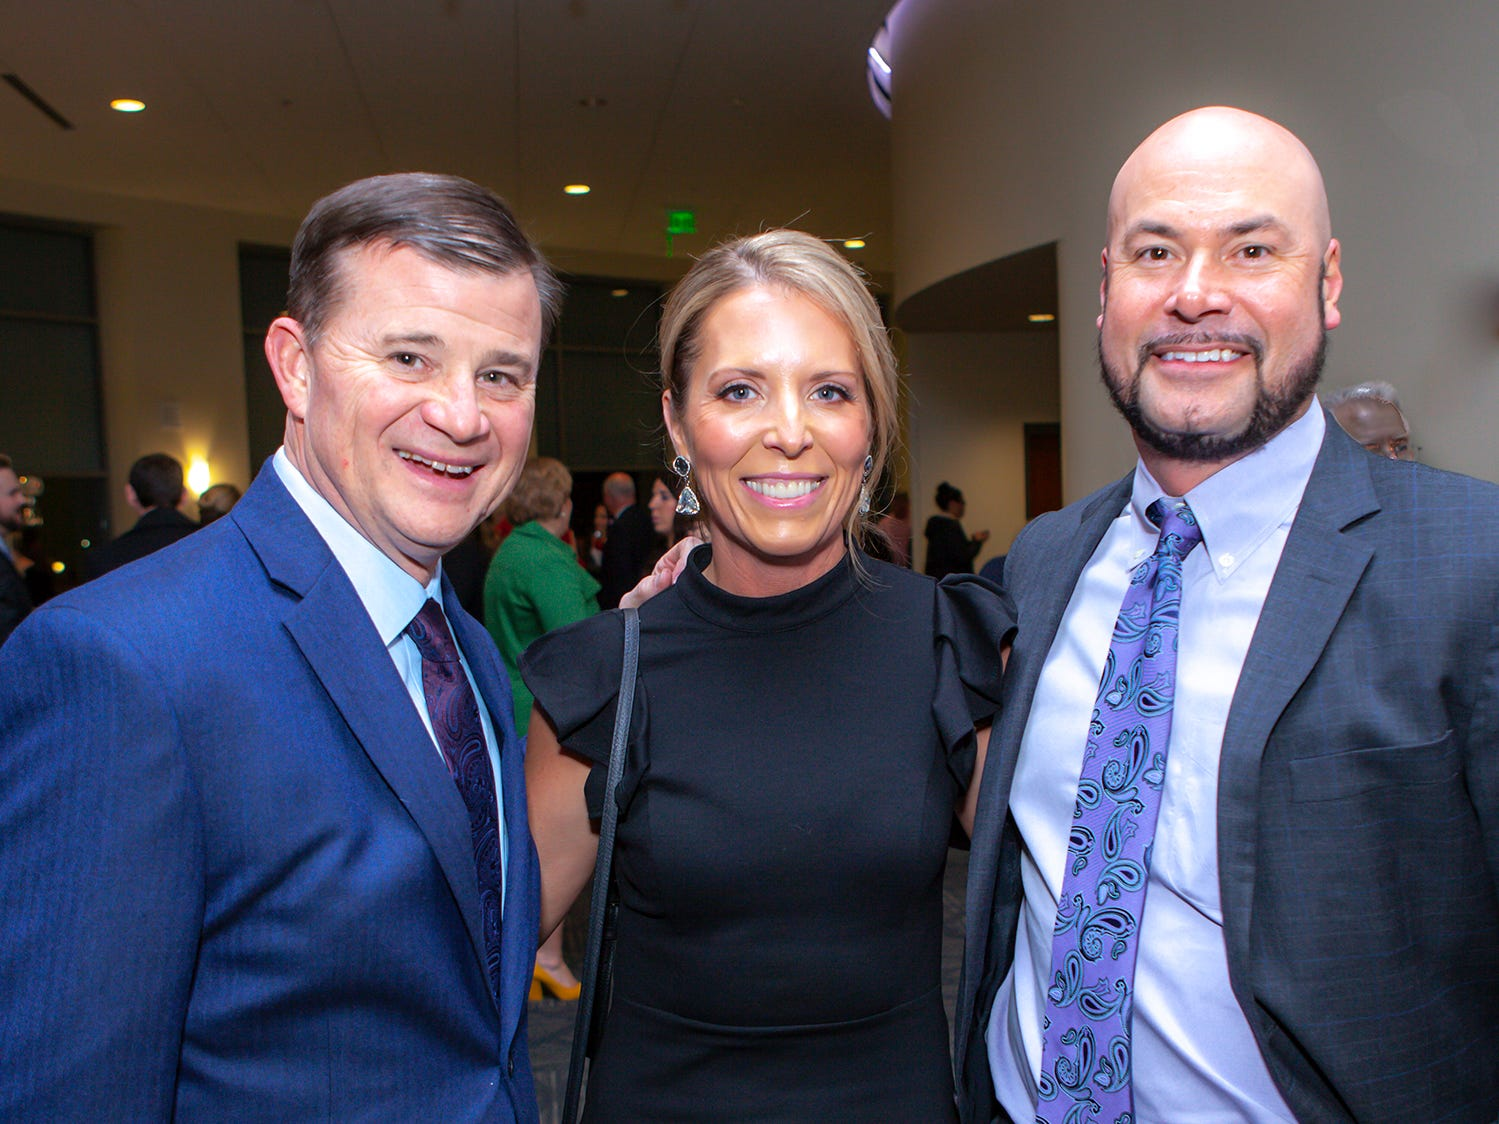 David Blackburn with Amy and Chad Hill at the 2019 Excellence in Education Gala, hosted by the City Schools Foundation on Friday, Jan. 25, 2019 at Stones River Country Club in Murfreesboro.